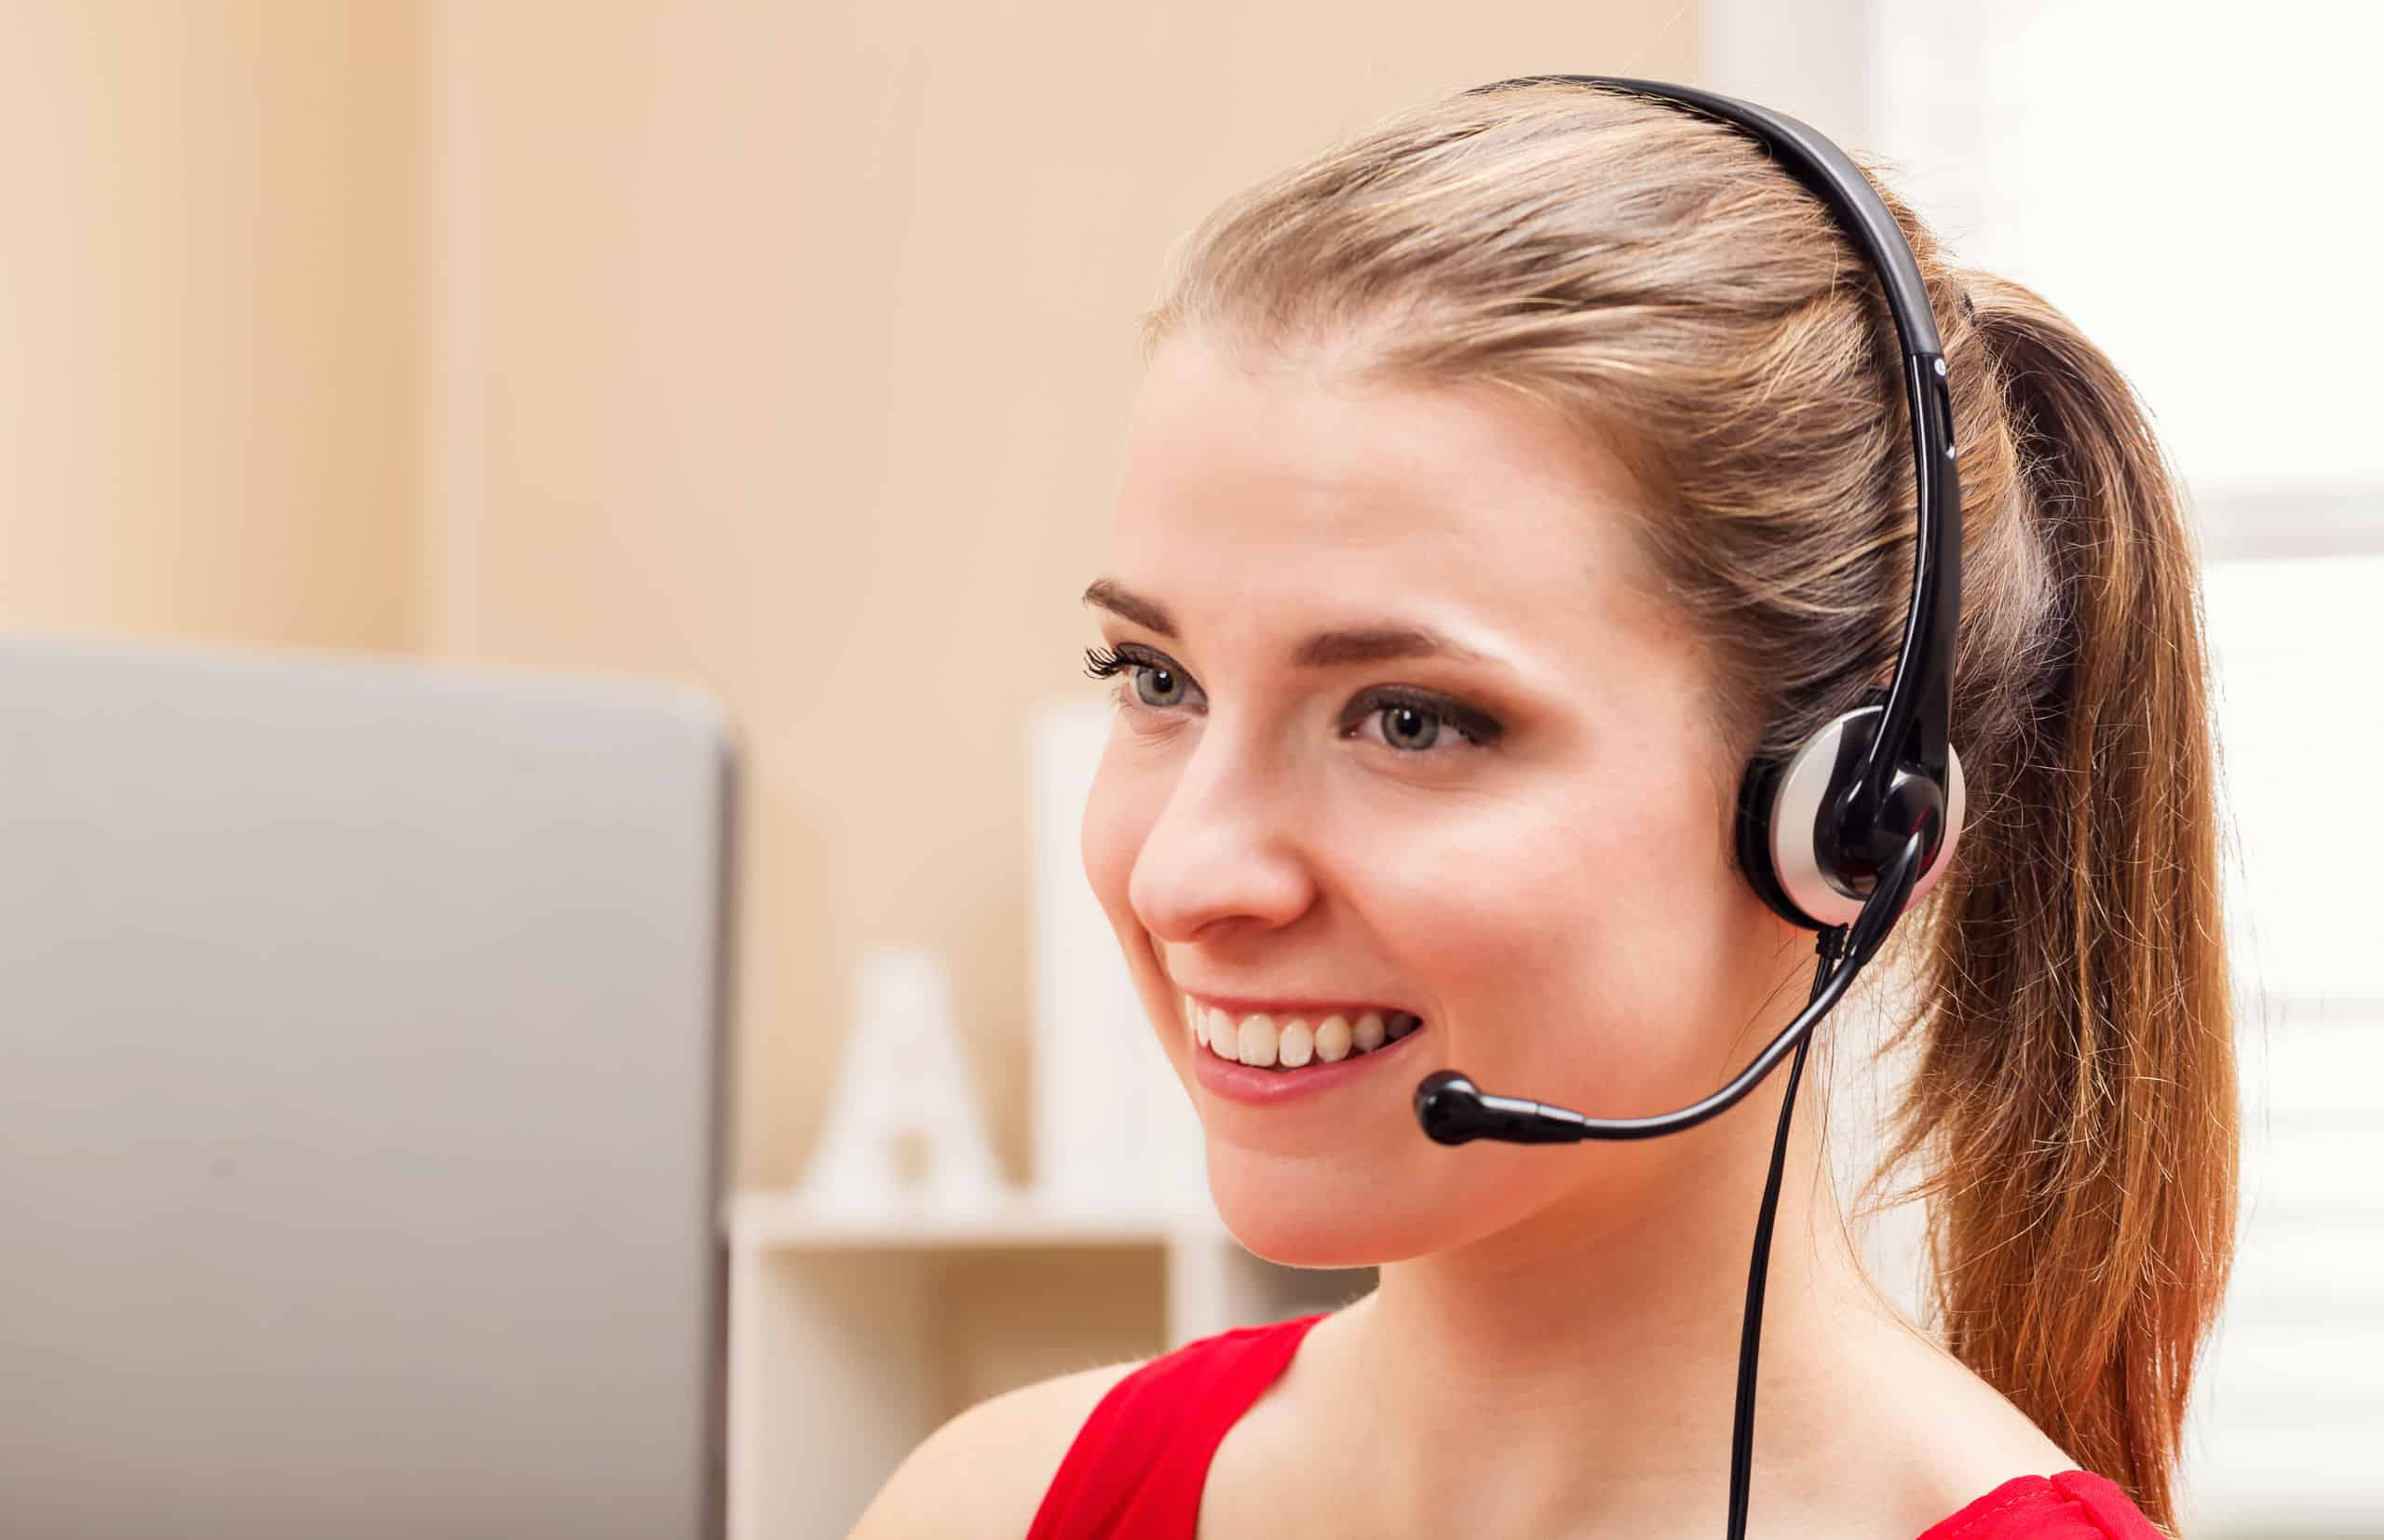 Work at Home Customer Support Jobs with Cigna